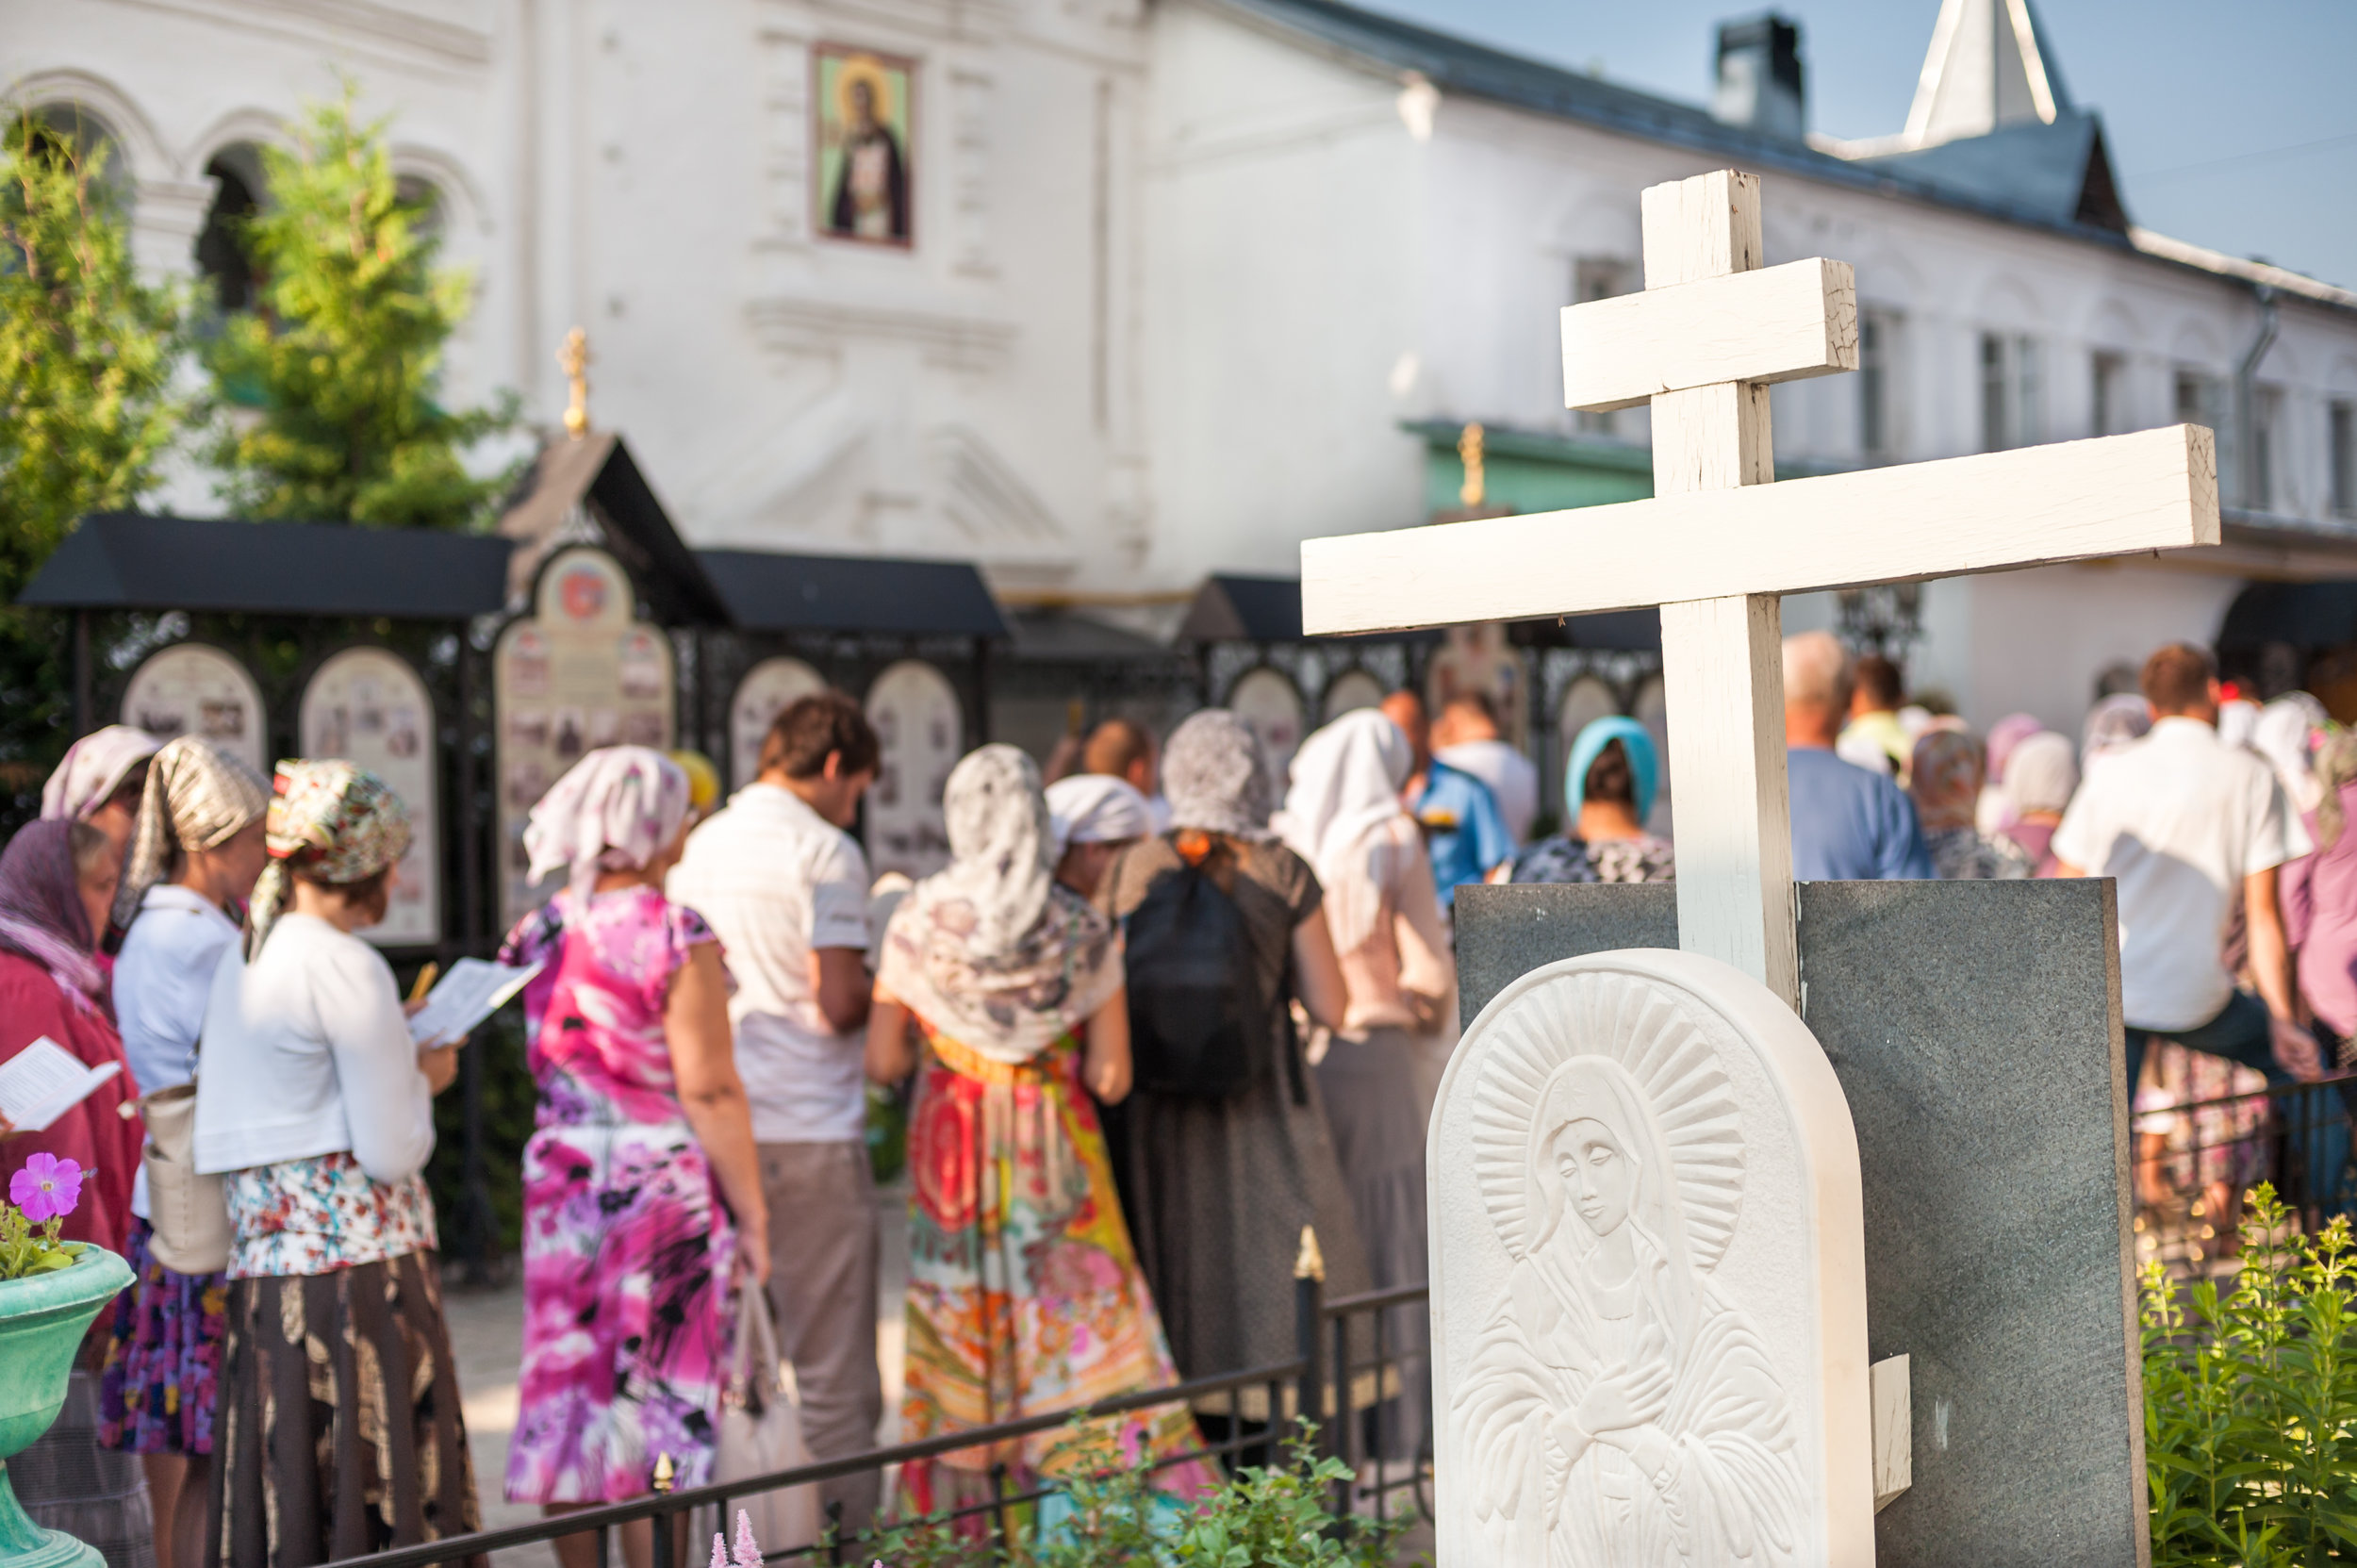 Pilgrims queuing to venerate the relics of St Peter and Fevronia, Murom, August 2013